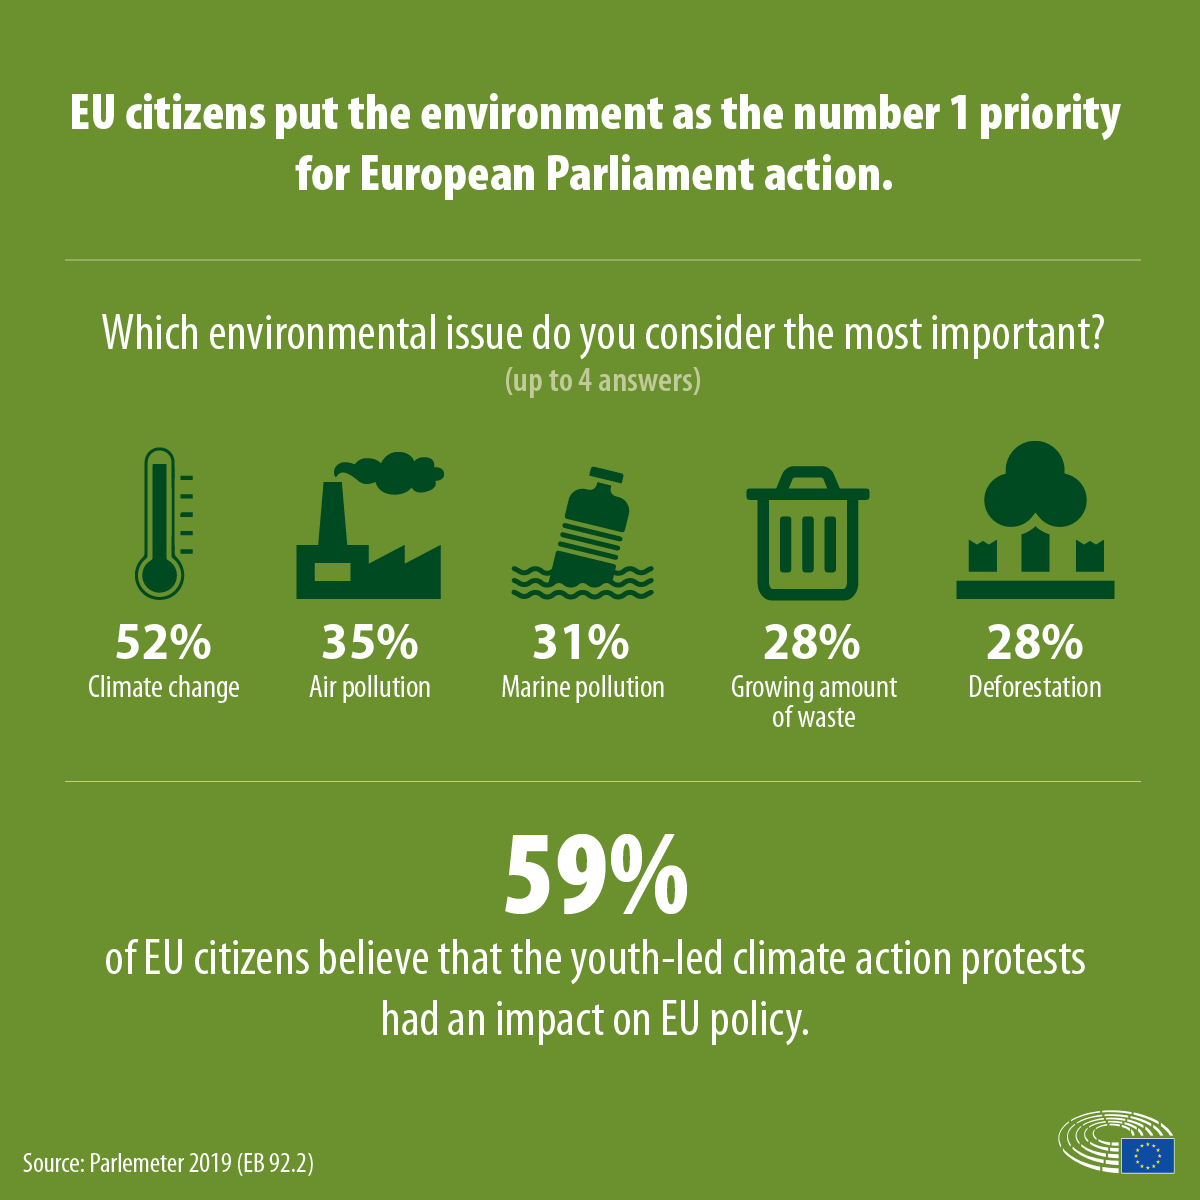 Eurobarometer 2019 on climate change.